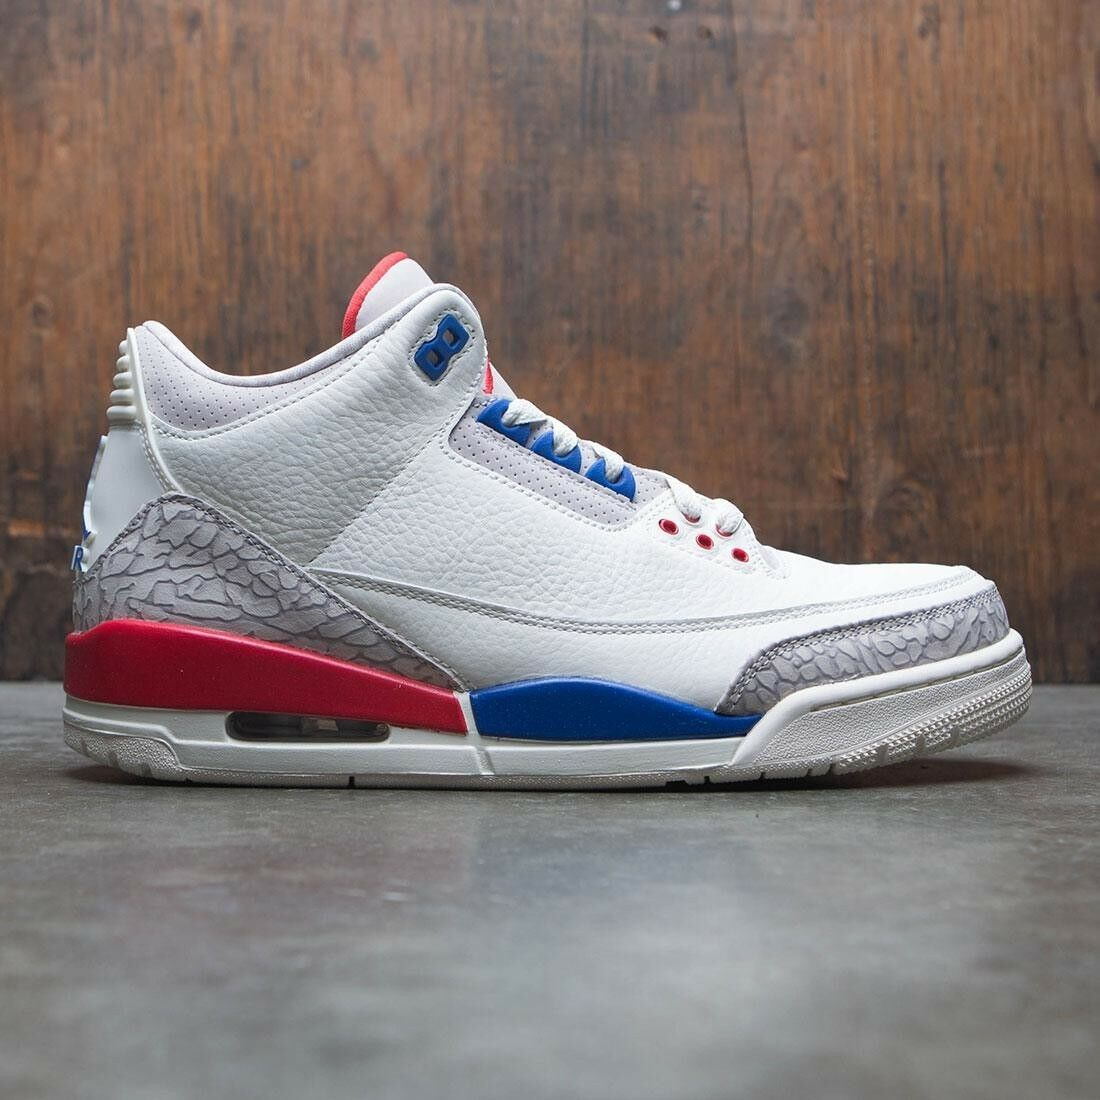 Nike Air Jordan 3 III Game Retro Sail USA Charity Game III Size 11.5. 136064-140 ecc033